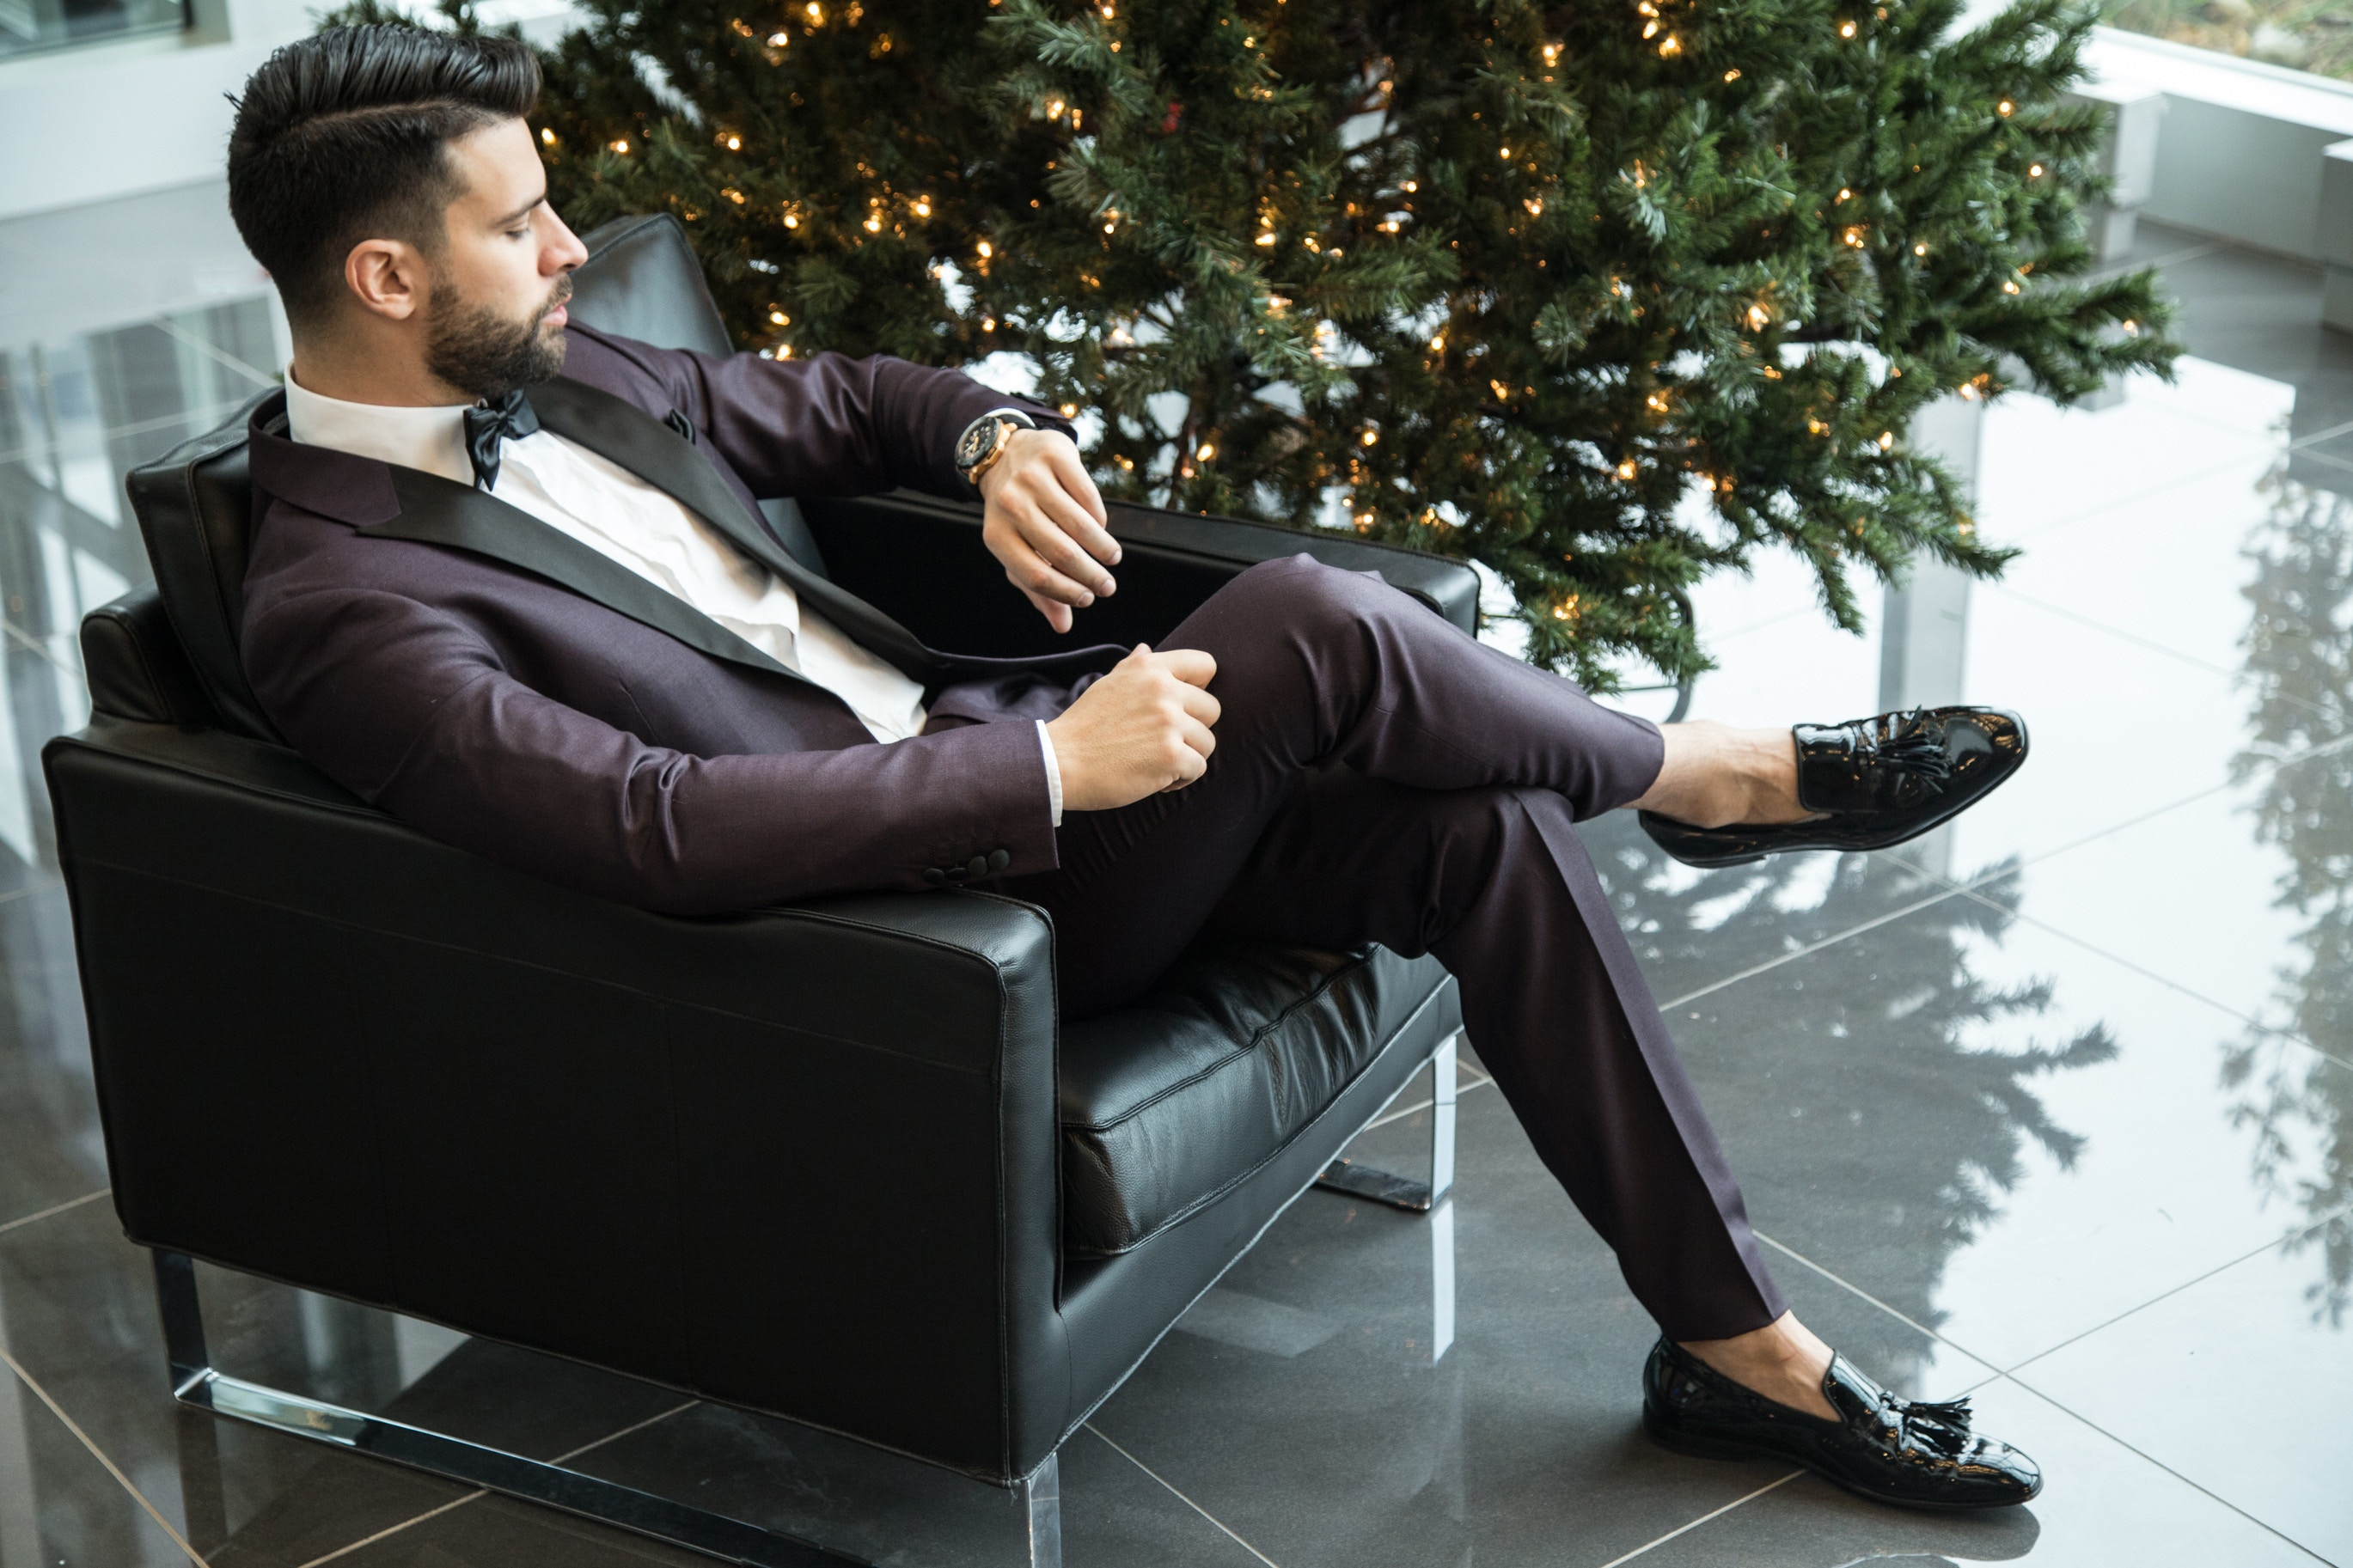 Man in formal wear setting on couch